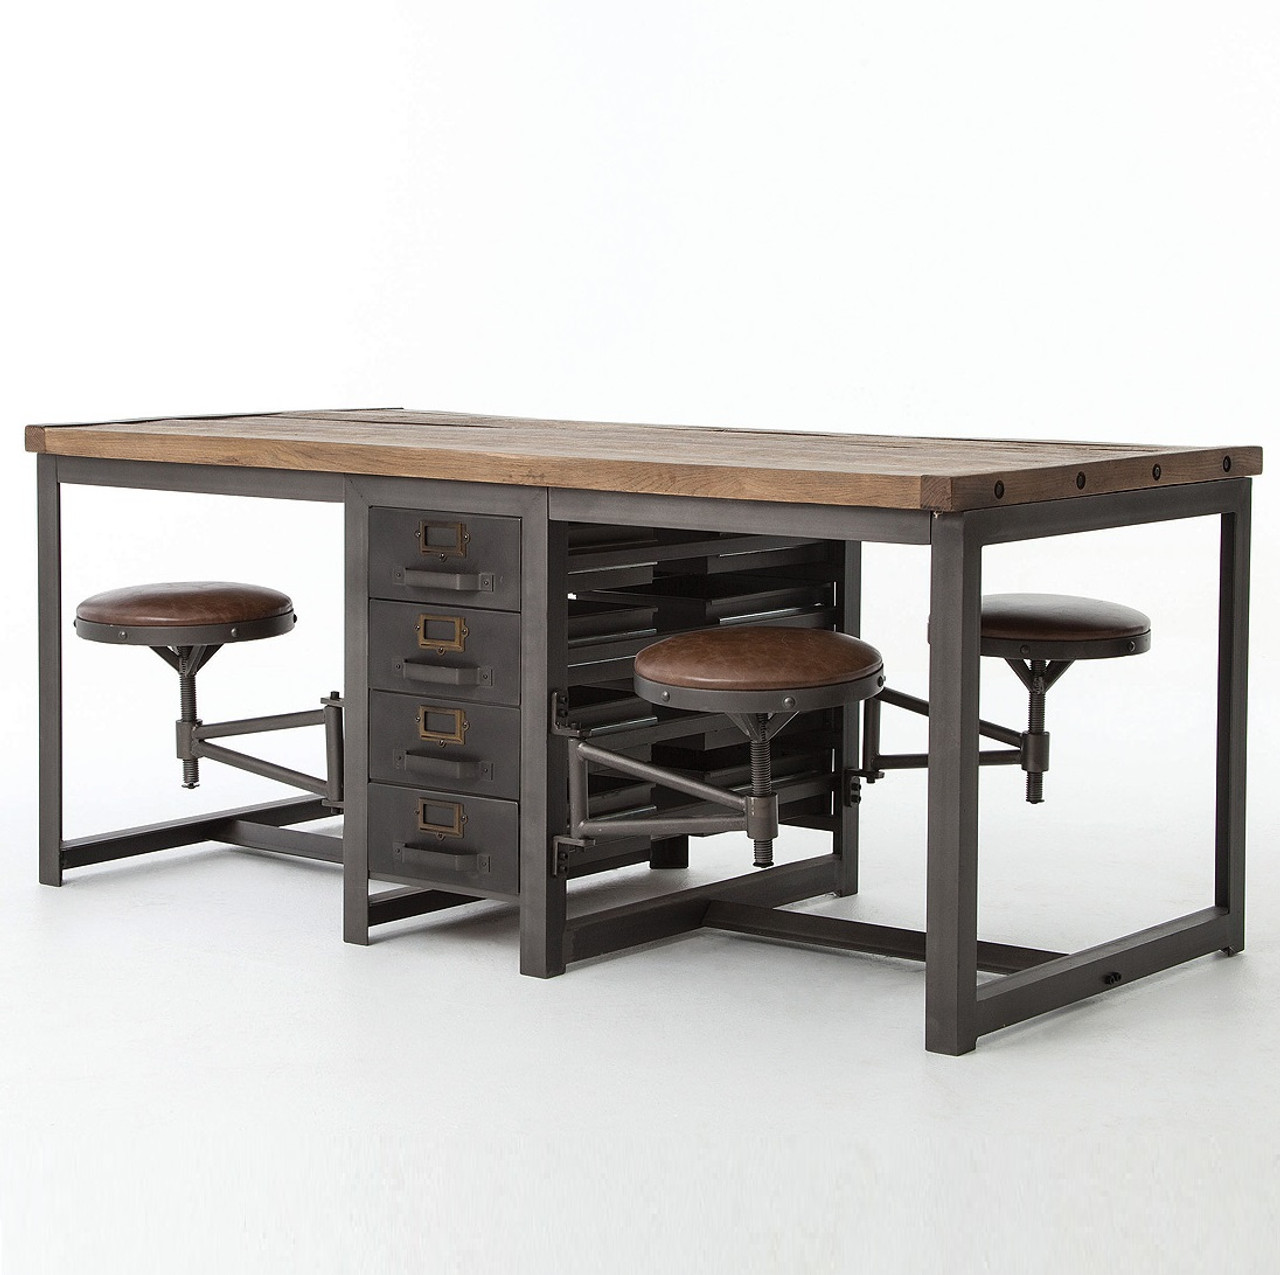 Rupert industrial architect work table desk with attached for Working table design ideas